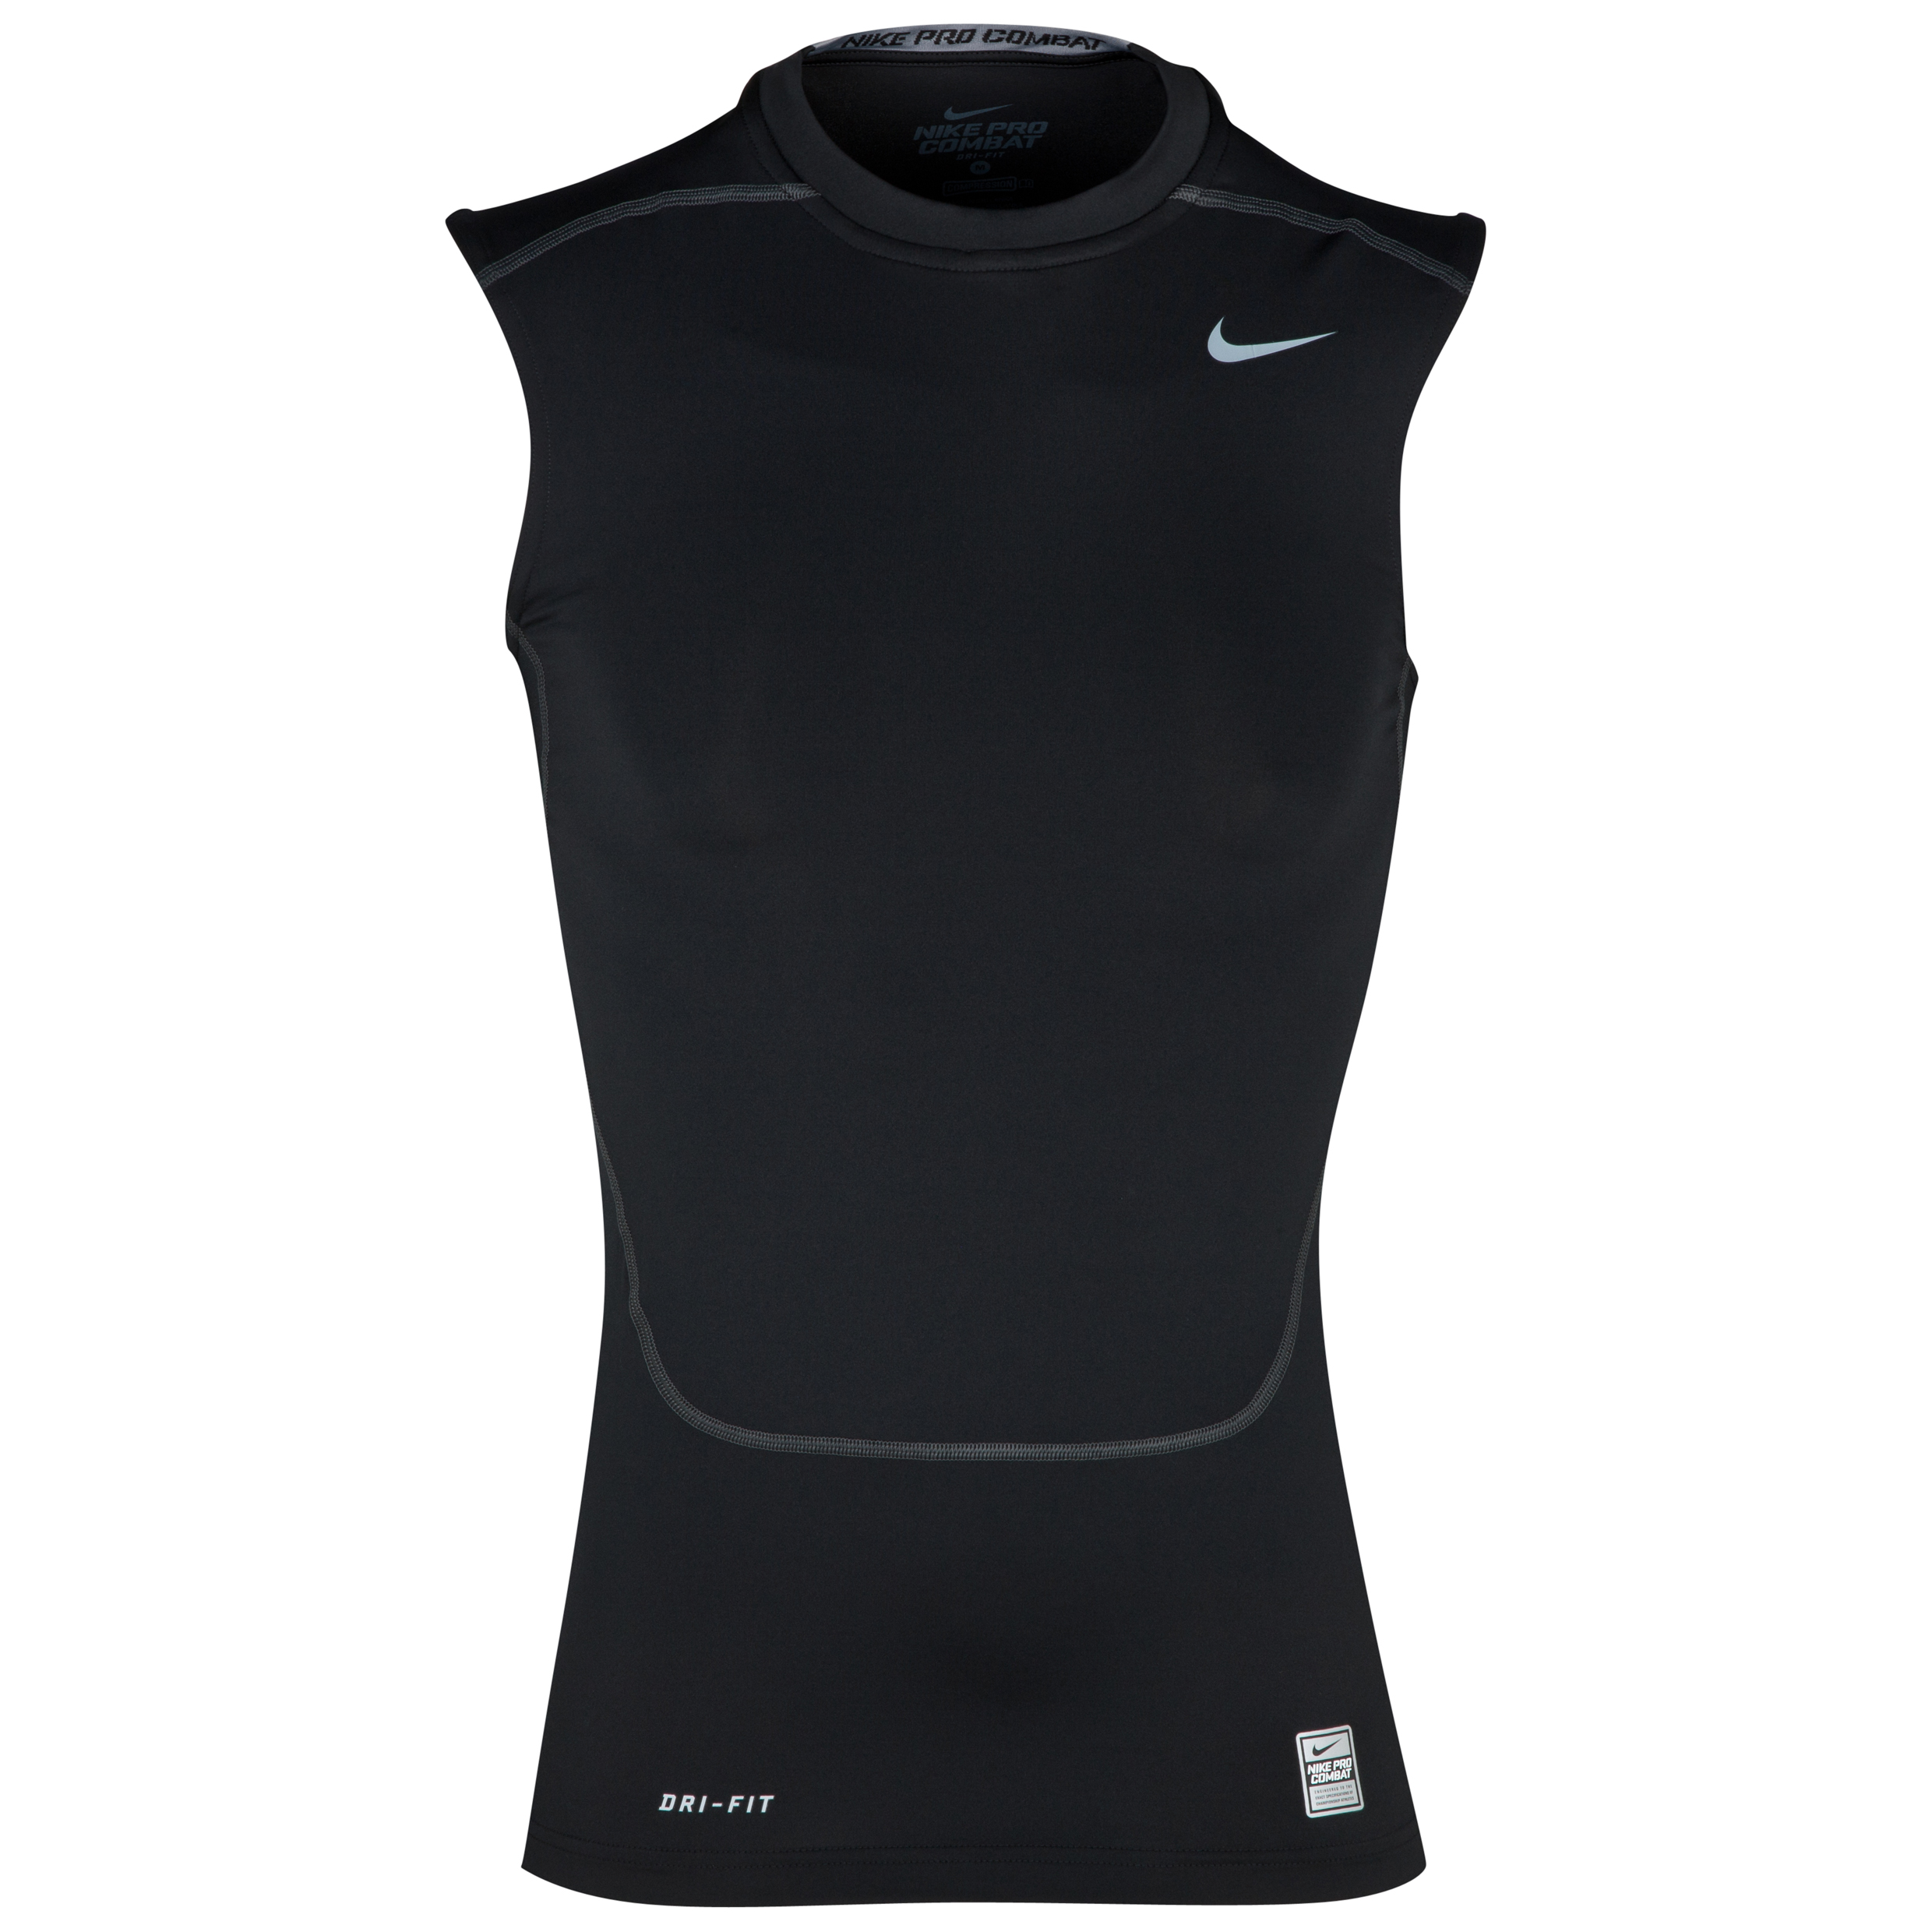 Nike Pro Combat Core Base Layer Top - Sleeveless Black